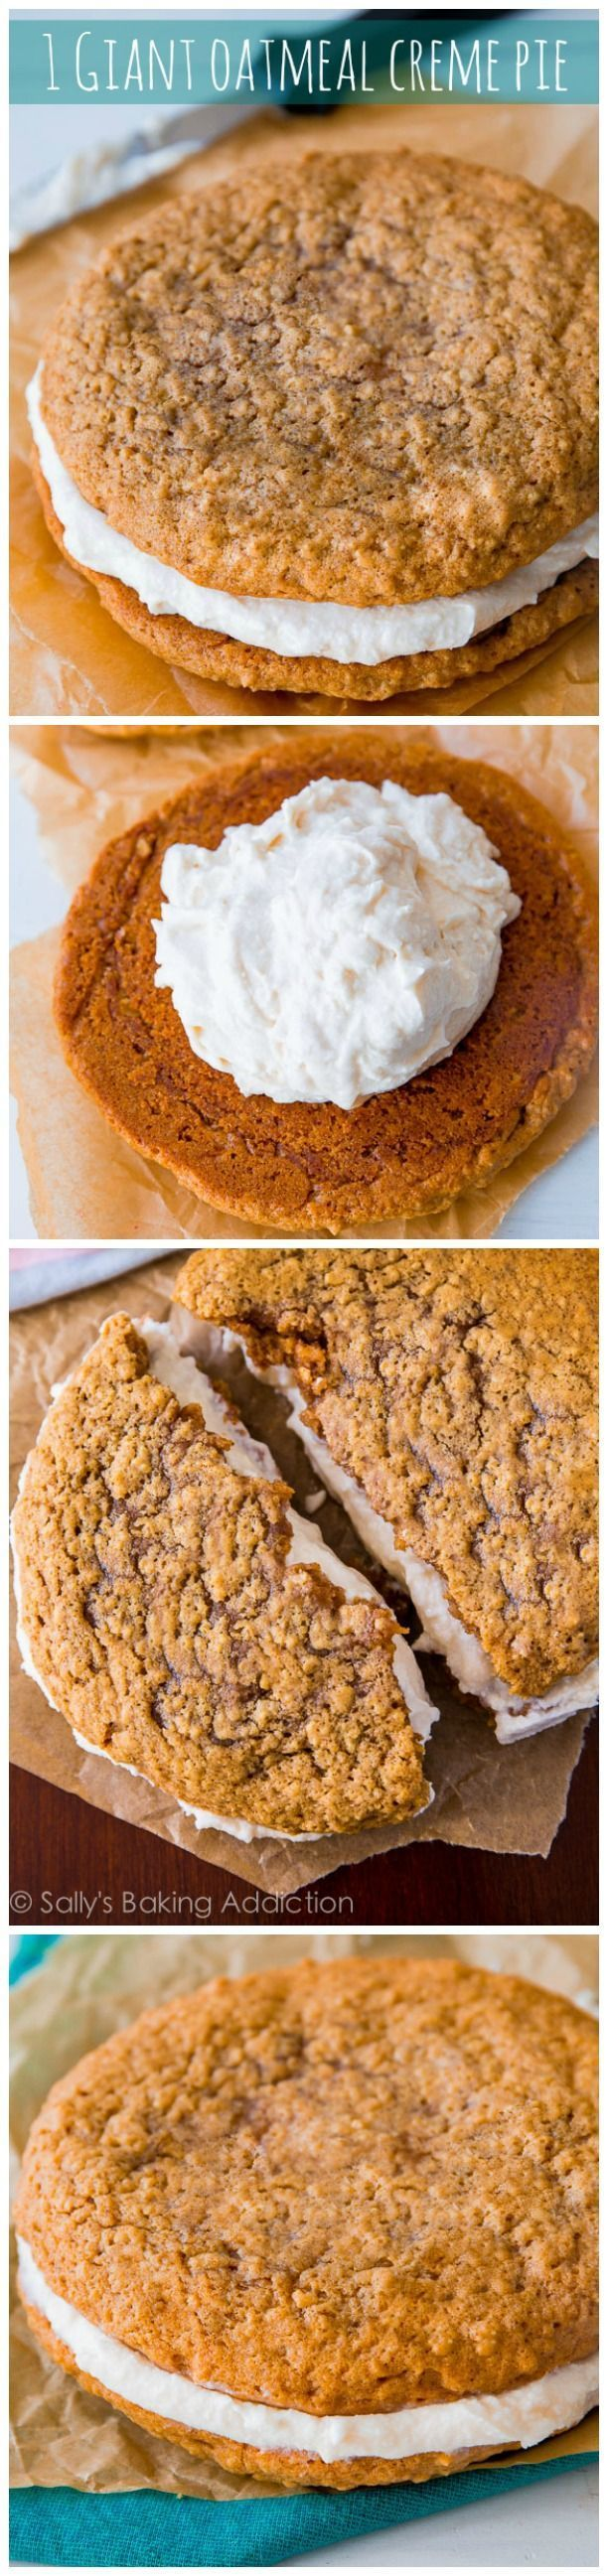 This simple recipe makes 1 Giant Oatmeal Creme Pie – like an old-fashioned Little Debbie, but bigger and better!